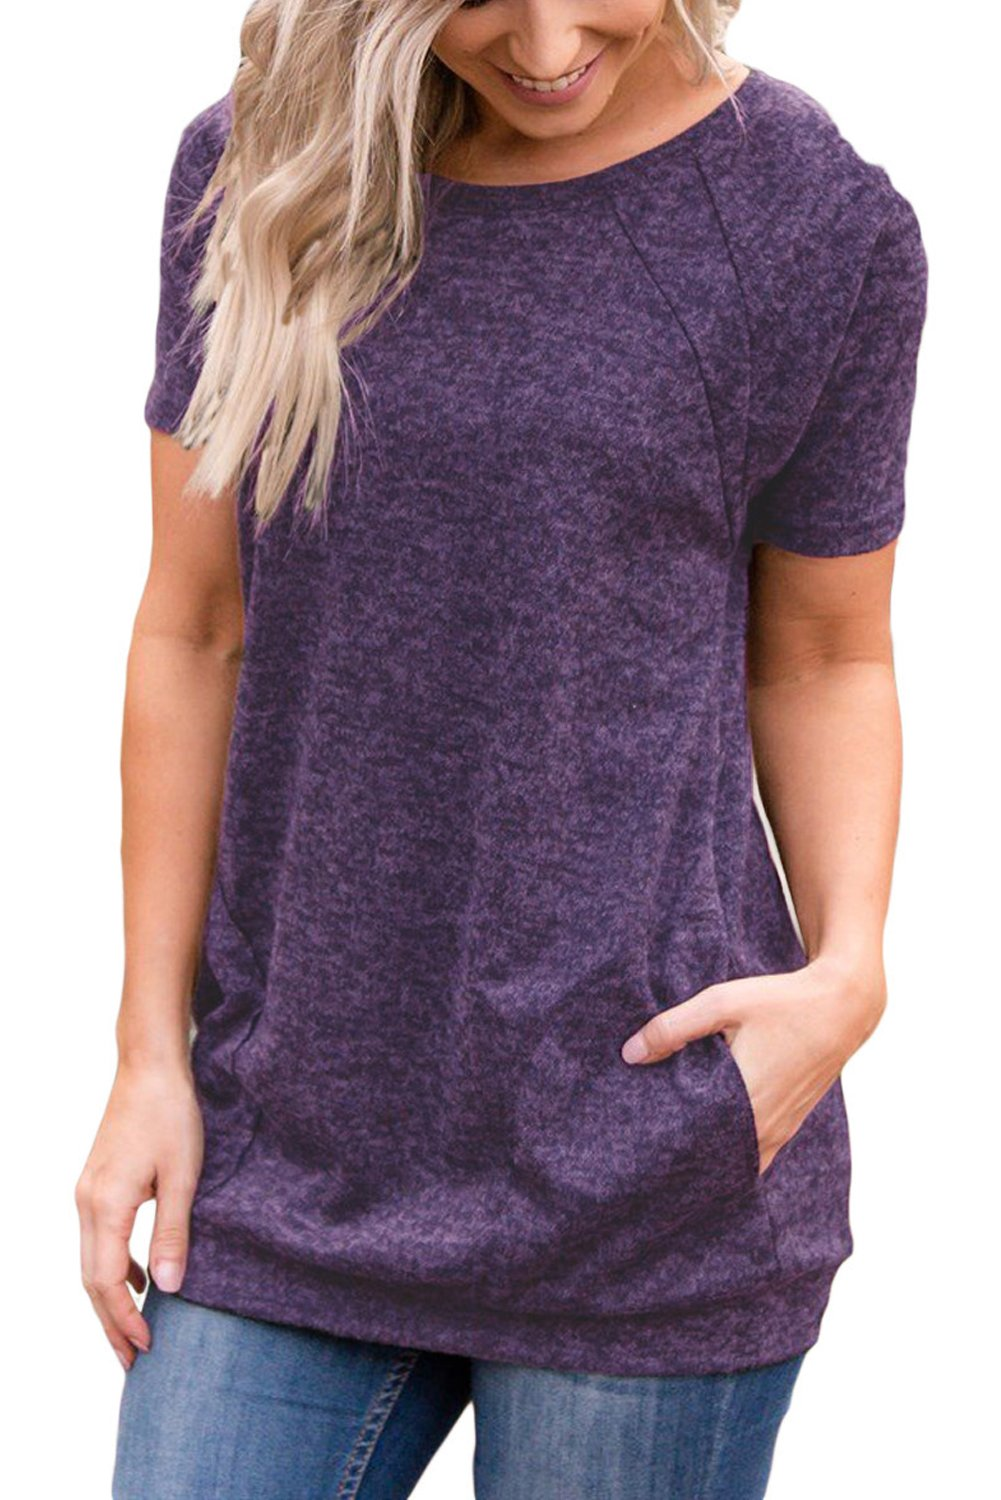 HOTAPEI Women's Shirts Short Sleeve Summer Casual Round Neck Loose Tunics for Women Top Blouse with Pockets Purple Medium